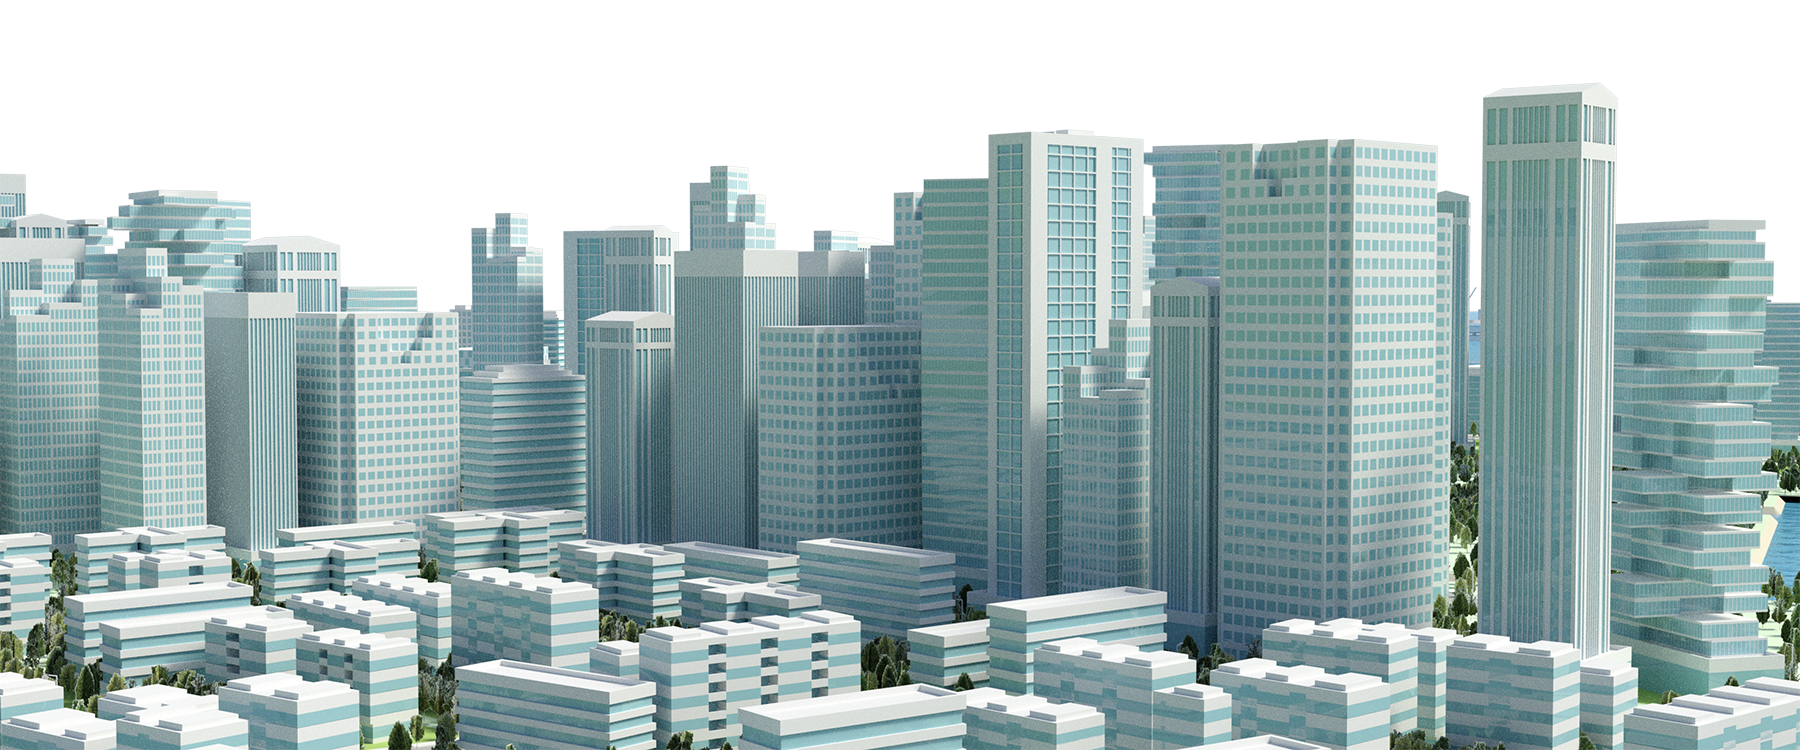 city png image city buildings png image for free download